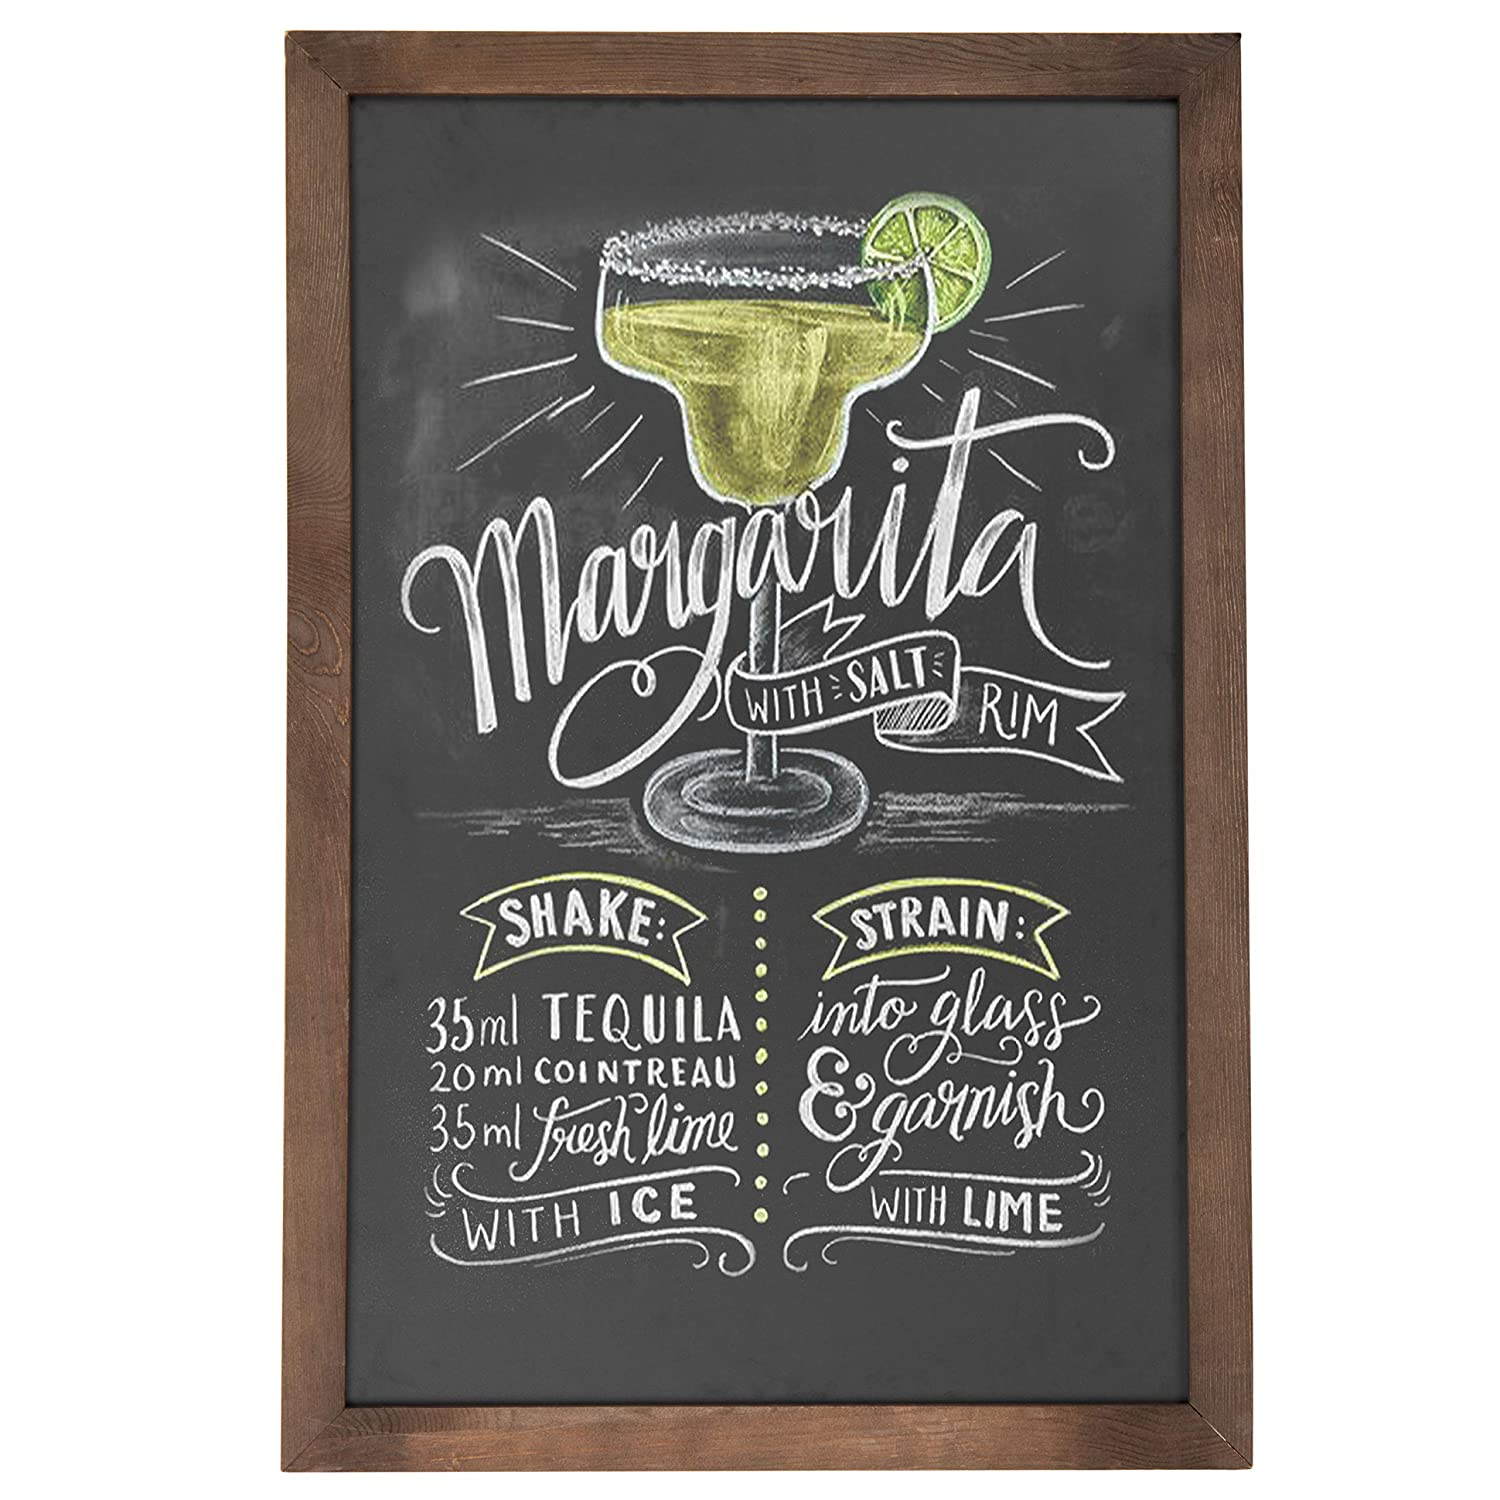 Vintage Wall Mounted Brown Wood Framed Chalkboard Sign / Retail & Cafe Menu Board - 36 x 24 MyGift